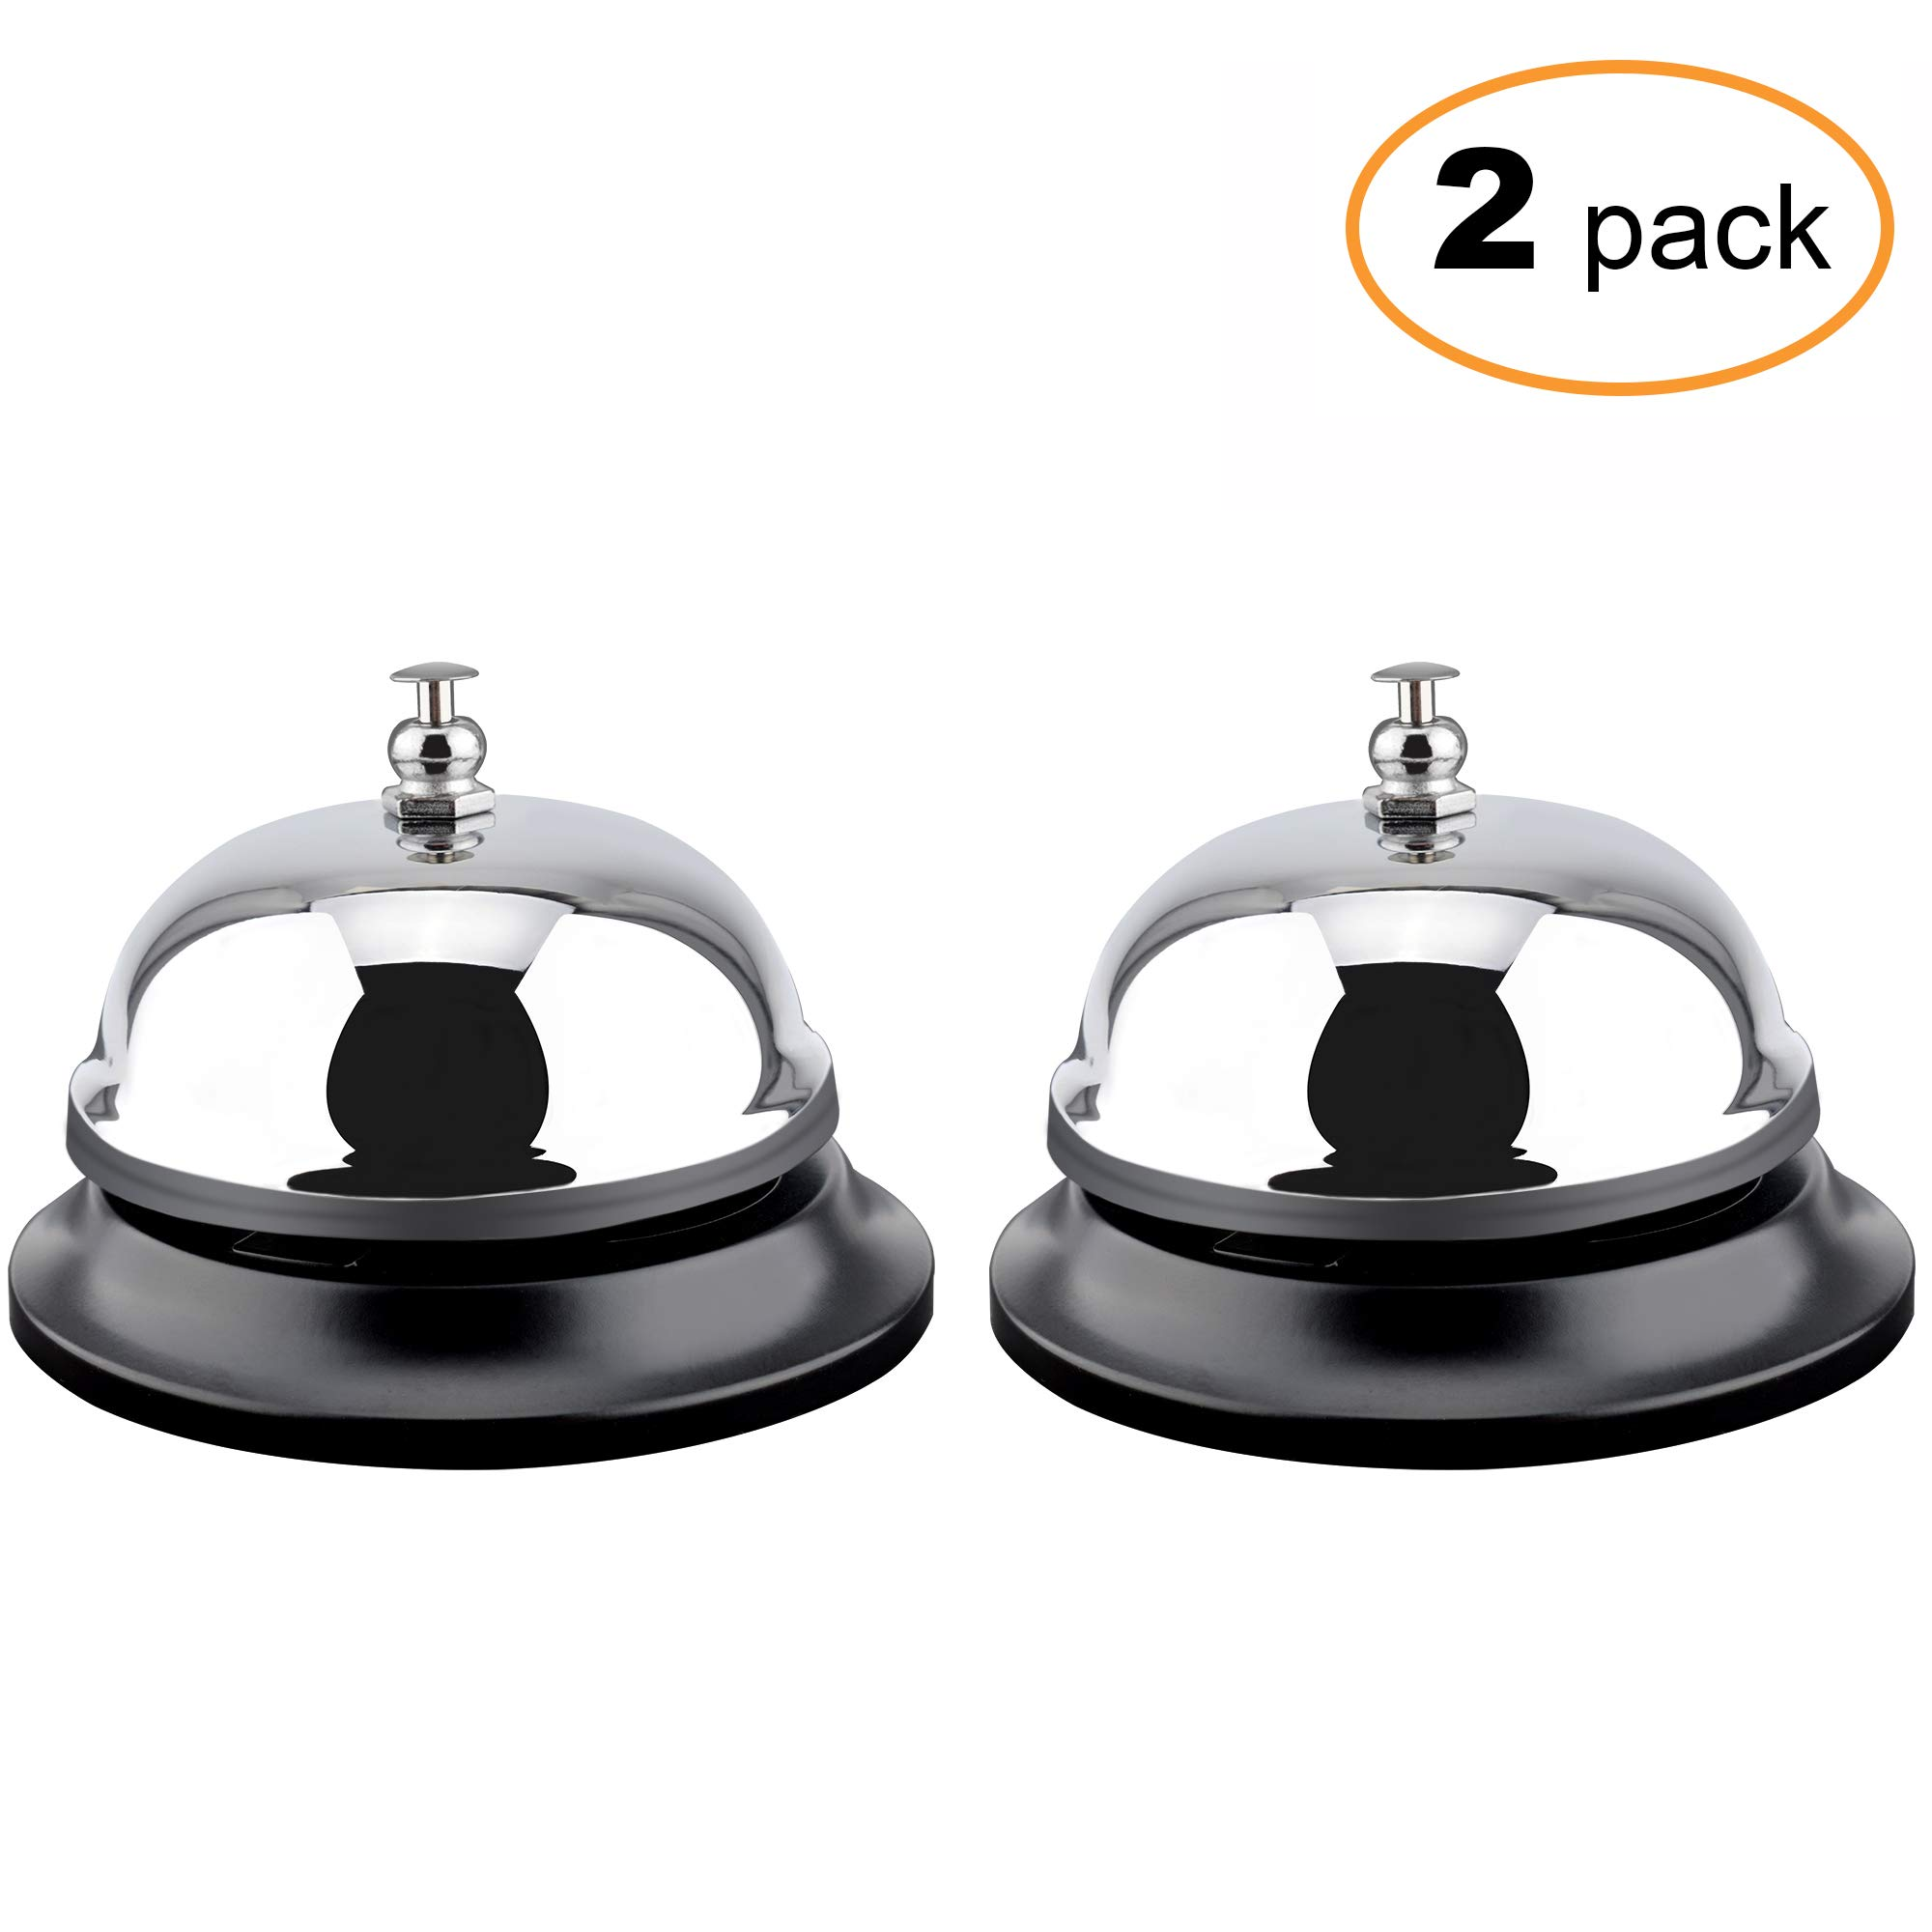 MROCO 2 Count Big Call Bells, 3.38 inch Diameter, Chrome Finish, All-Metal Construction, Desk Bell Service Bell for Hotels, Schools, Restaurants, Reception Areas, Hospitals, Warehouses(Silver)